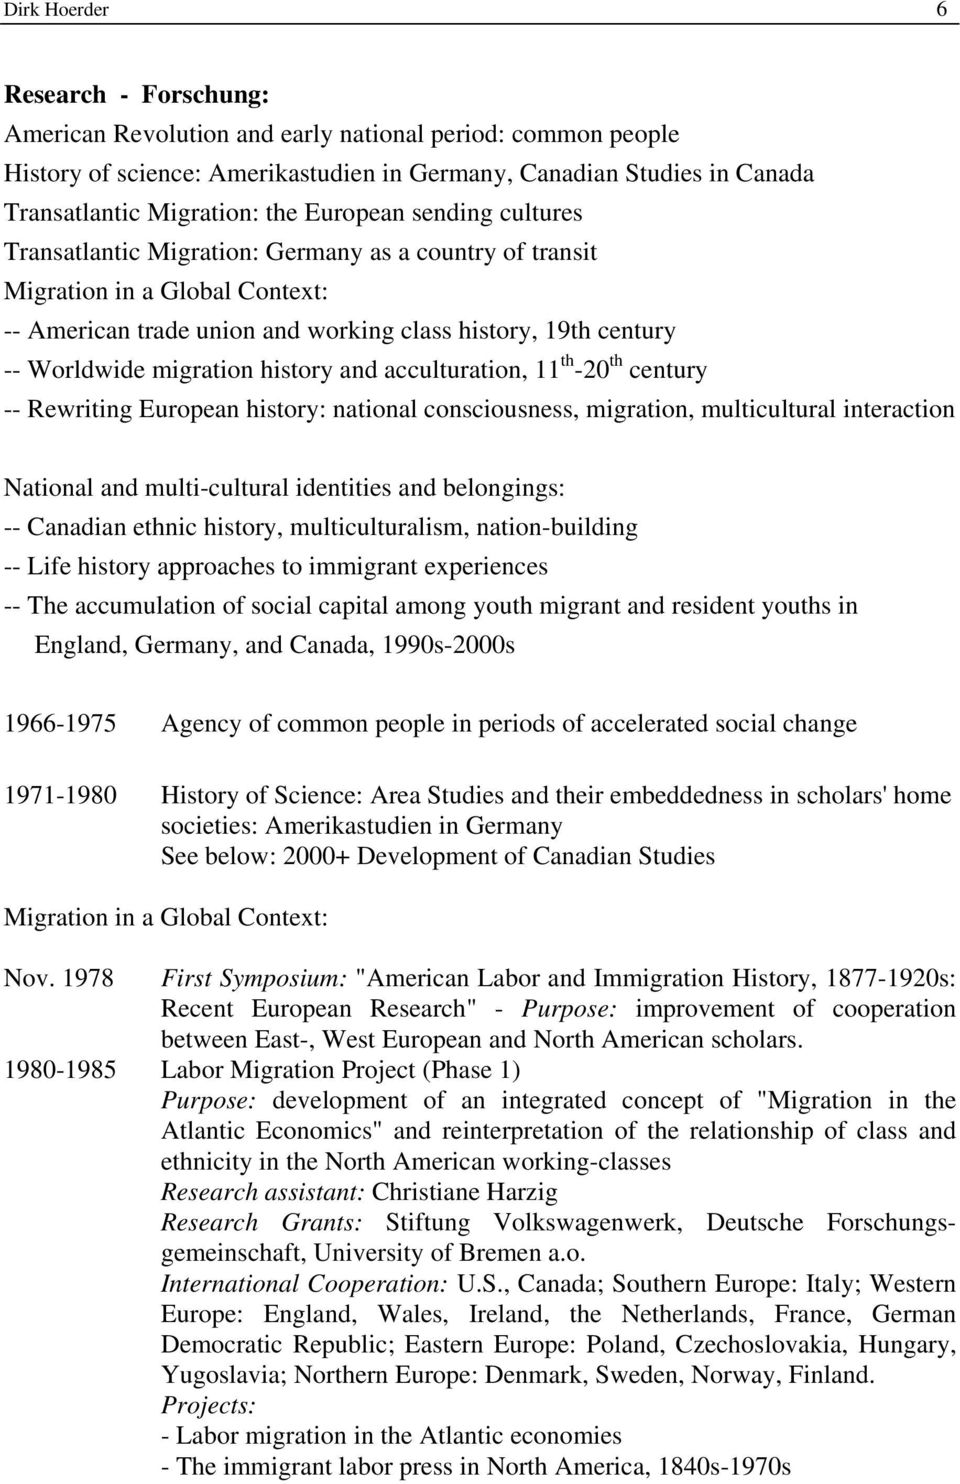 migration history and acculturation, 11 th -20 th century -- Rewriting European history: national consciousness, migration, multicultural interaction National and multi-cultural identities and